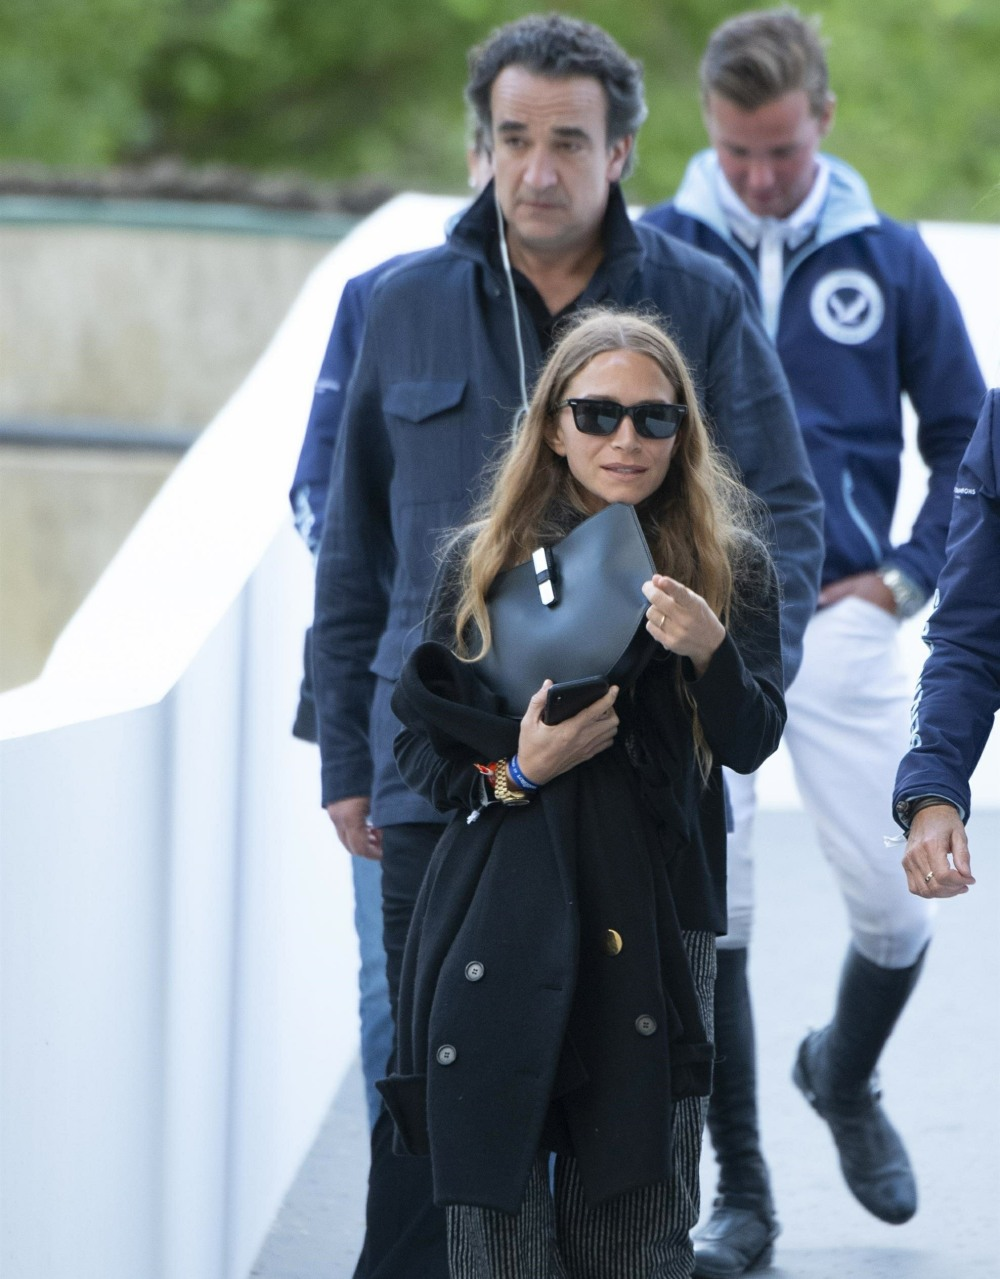 Olivier Sarkozy and his wife Mary-Kate Olsen attend the Global Champions Tour CSI2 Madrid 2019